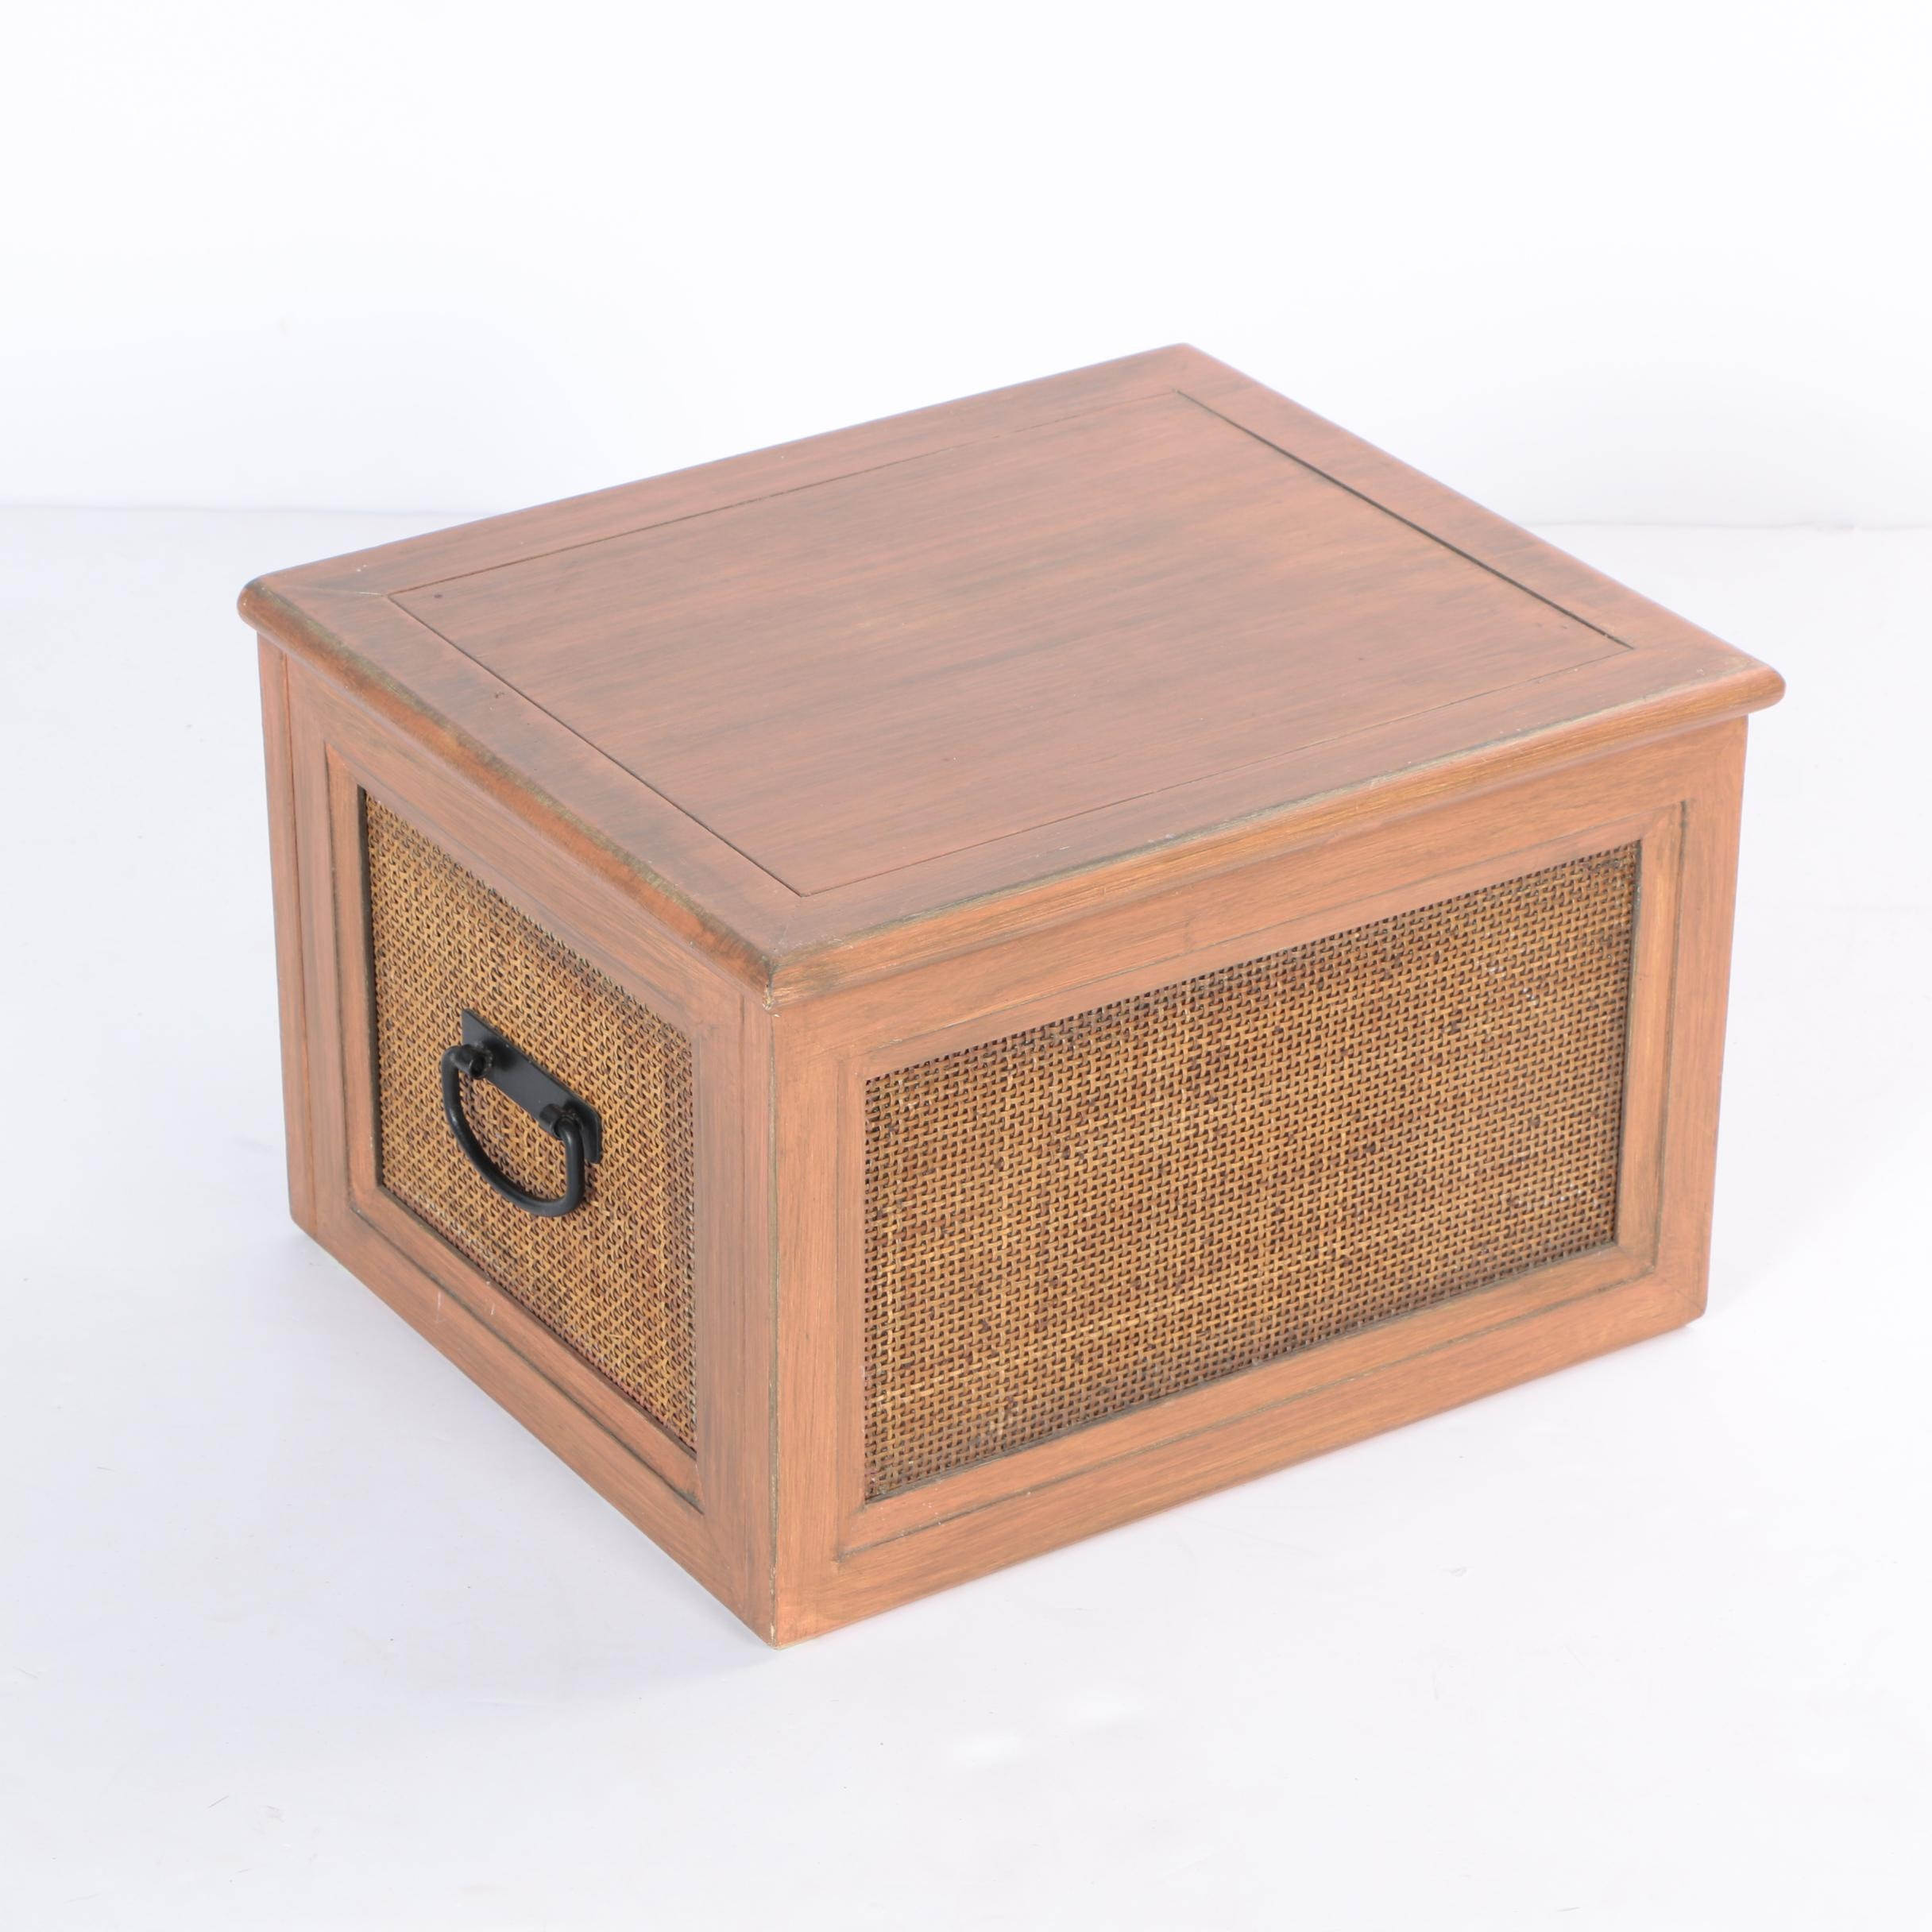 Wooden and Rattan Storage Box